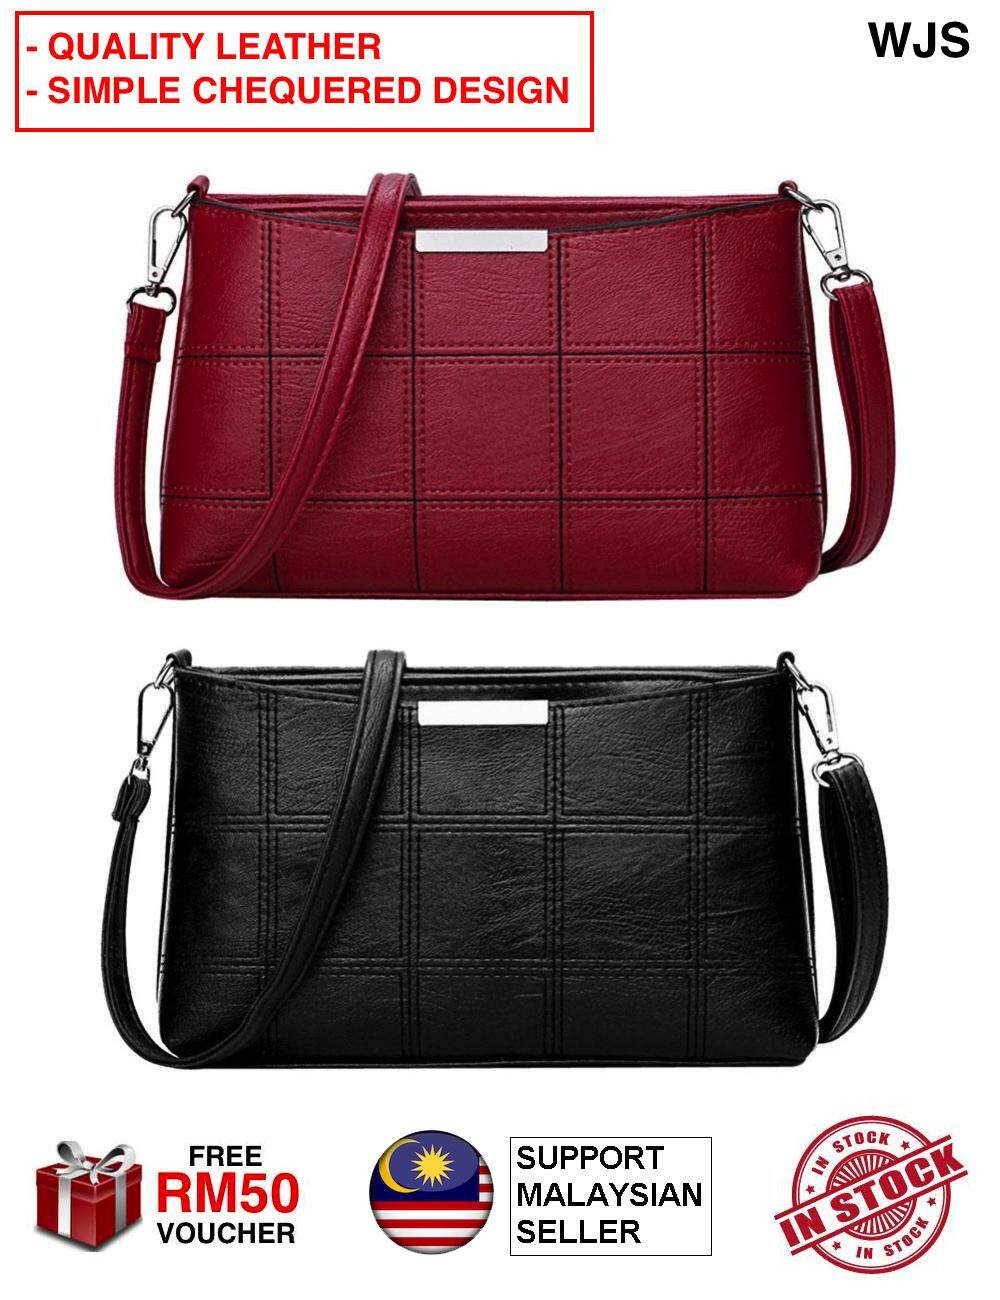 (PREMIUM DESIGN) WJS Premium Quality Simple Chequered Boxed Messenger Bag Fashion Women Shoulder Bag Satchel Crossbody Tote Handbag Hand Bag Beg Tangan Handbeg Purse Messenger Bag BLACK RED [FREE RM 50 VOUCHER]